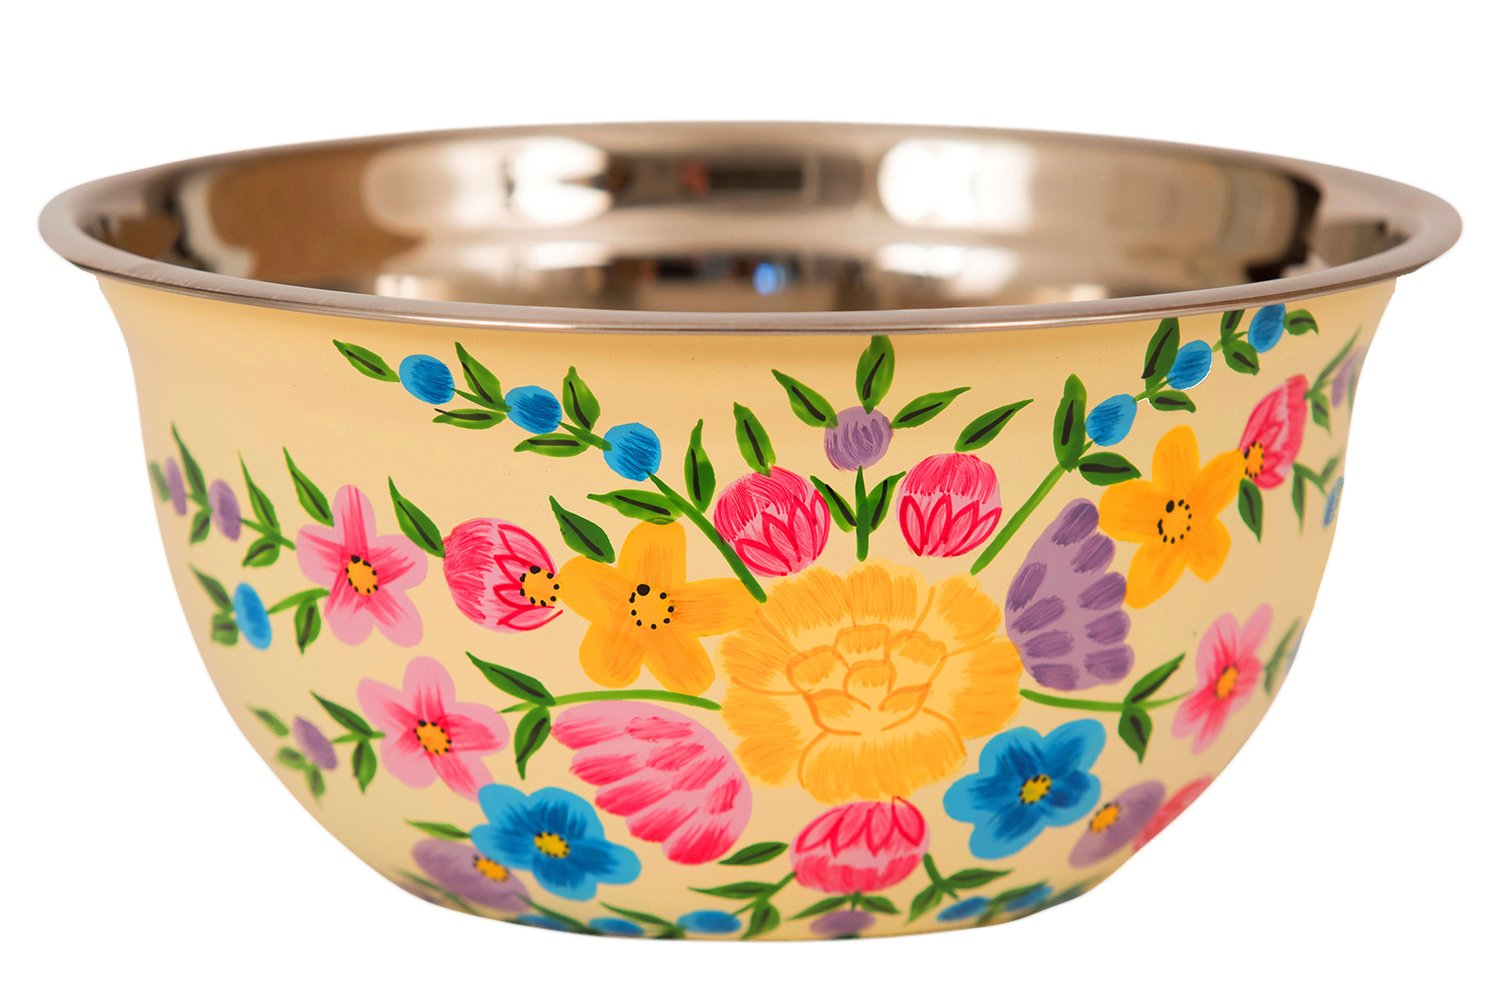 "Hand Painted Stainless Steel Bowl – Large Salad Bowl, Fruit Bowl, Mixing Bowl, & More – Decorative, Handmade Floral Art Bowl for Serving and Home Décor, 10"" Diameter, 3.6L Volume by, Spices Home Decor"